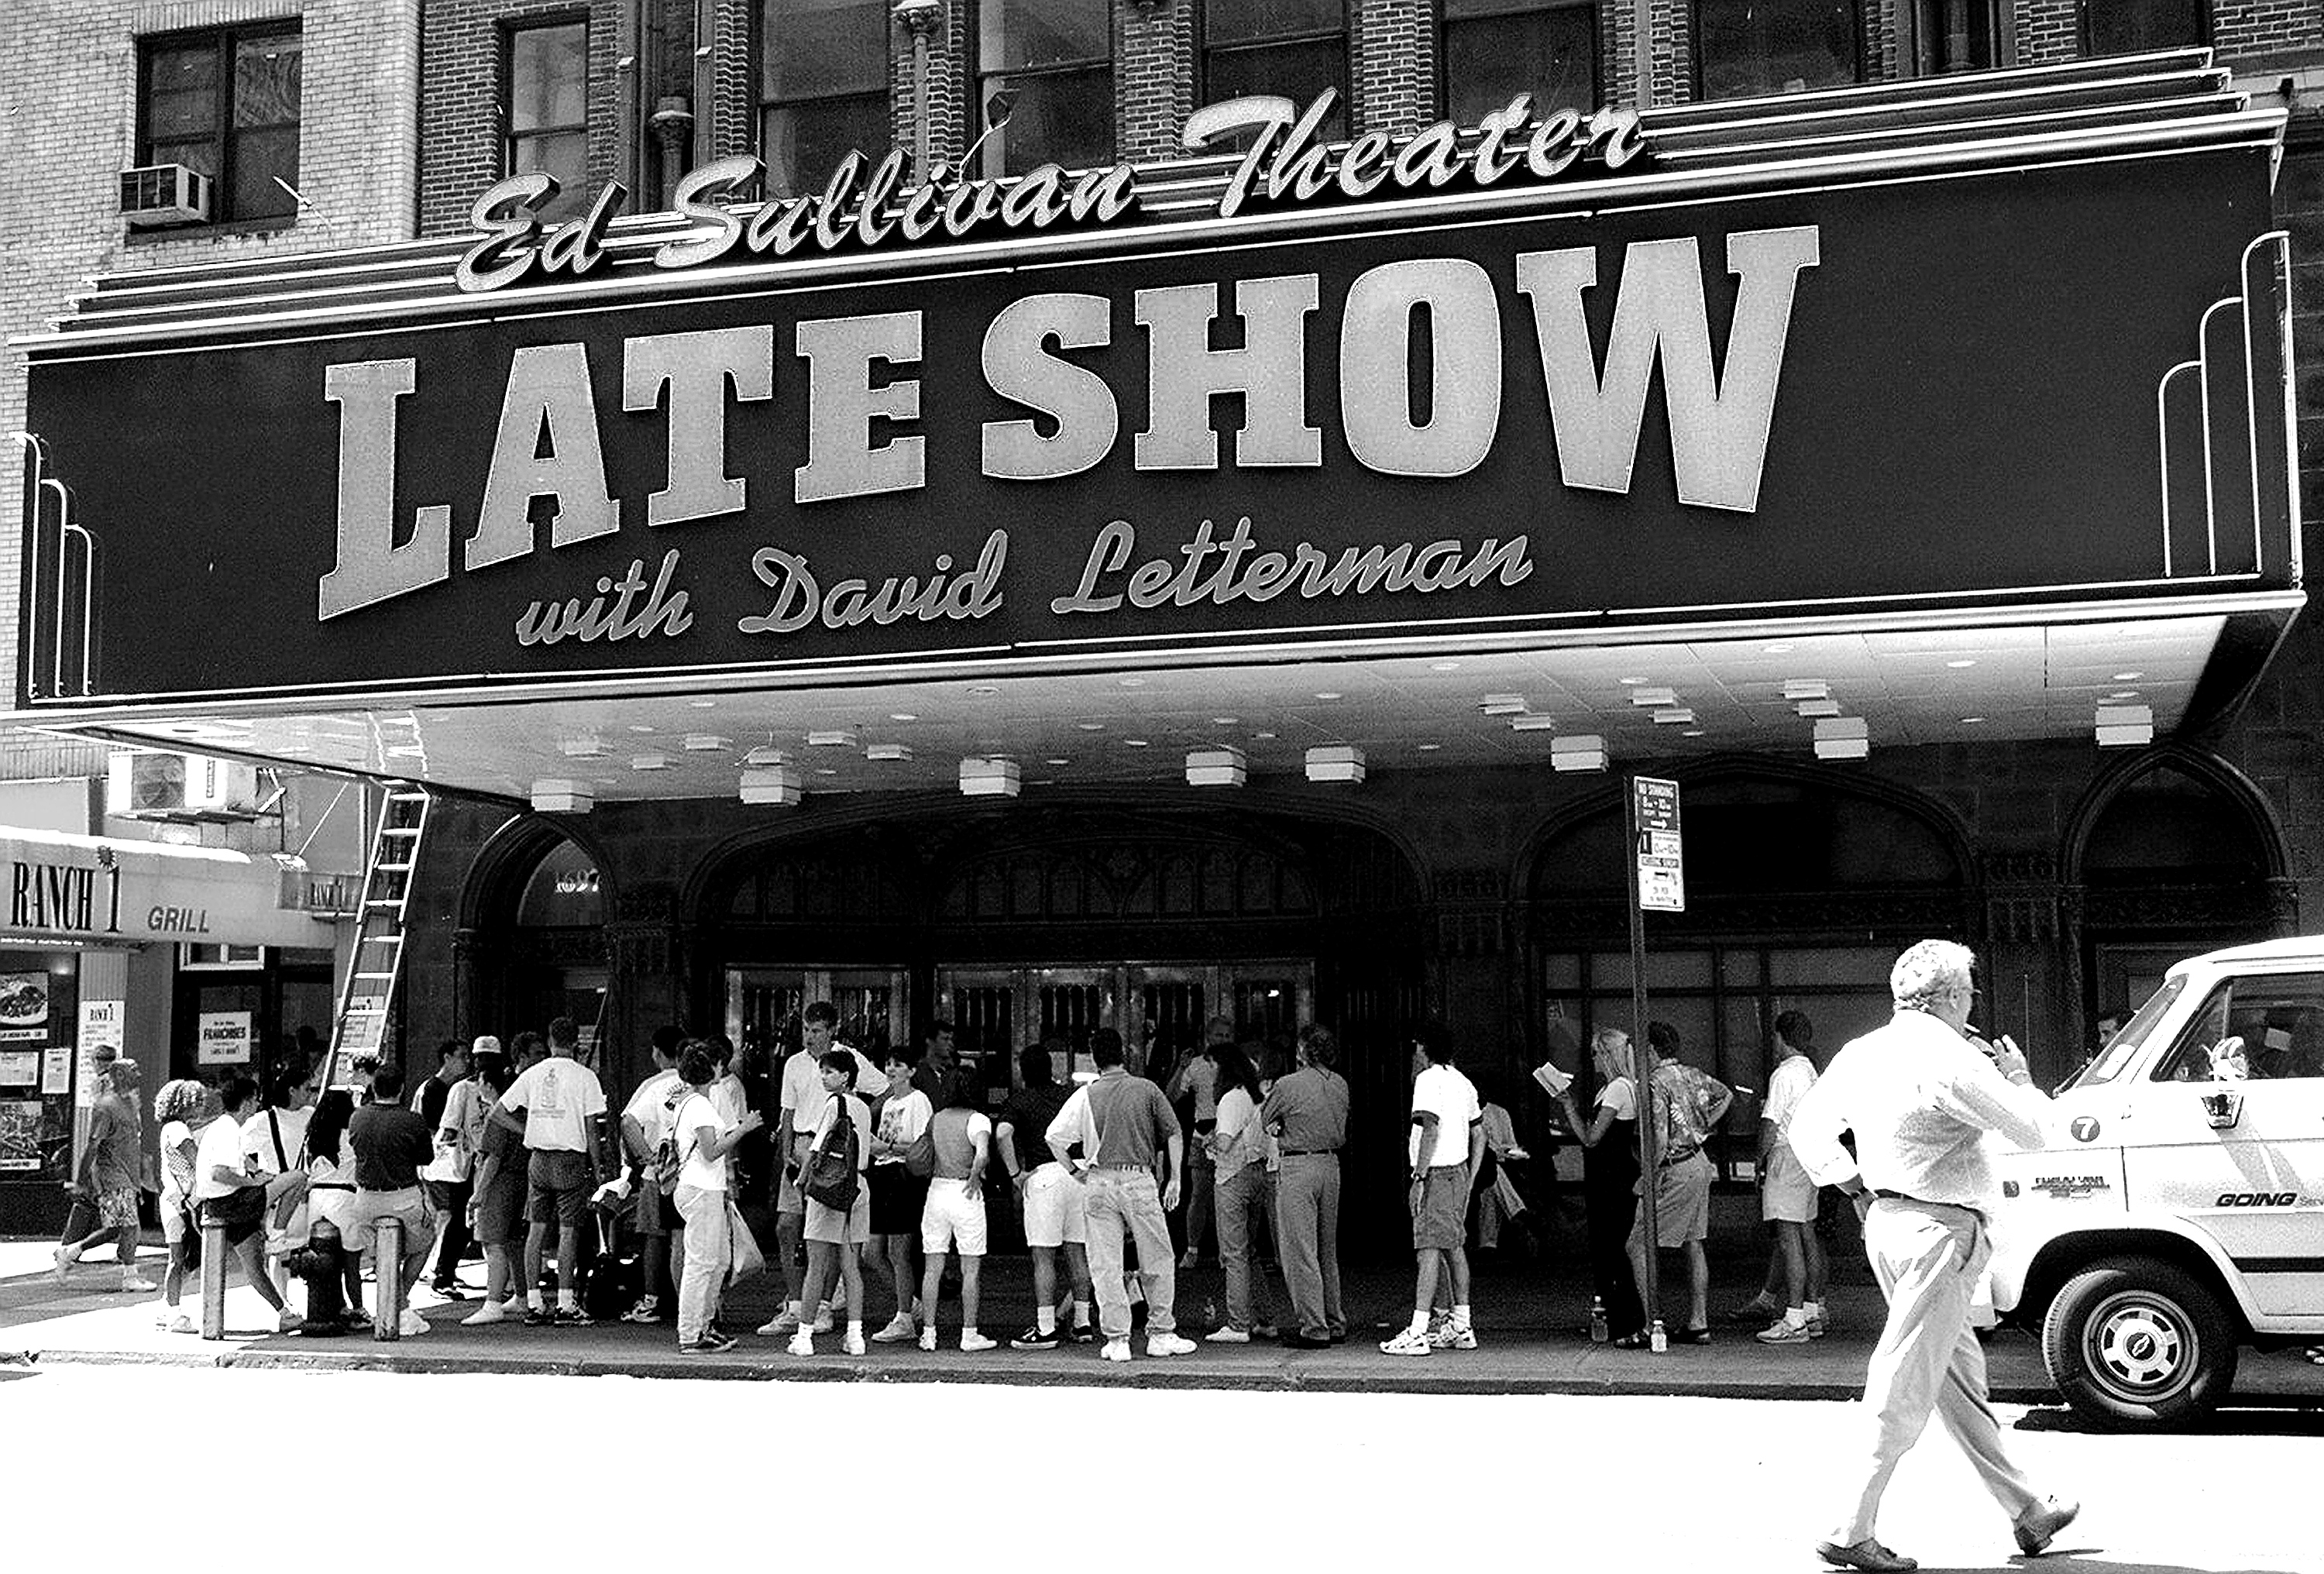 Letterman left NBC for CBS to start the <i>Late Show with David Letterman</i> when NBC gave the reigns of <i>The Tonight Show</i> to Jay Leno instead of him after Johnny Carson's retirement. The first show debuted on August 30, 1993, with Letterman's retirement announced for 2015.